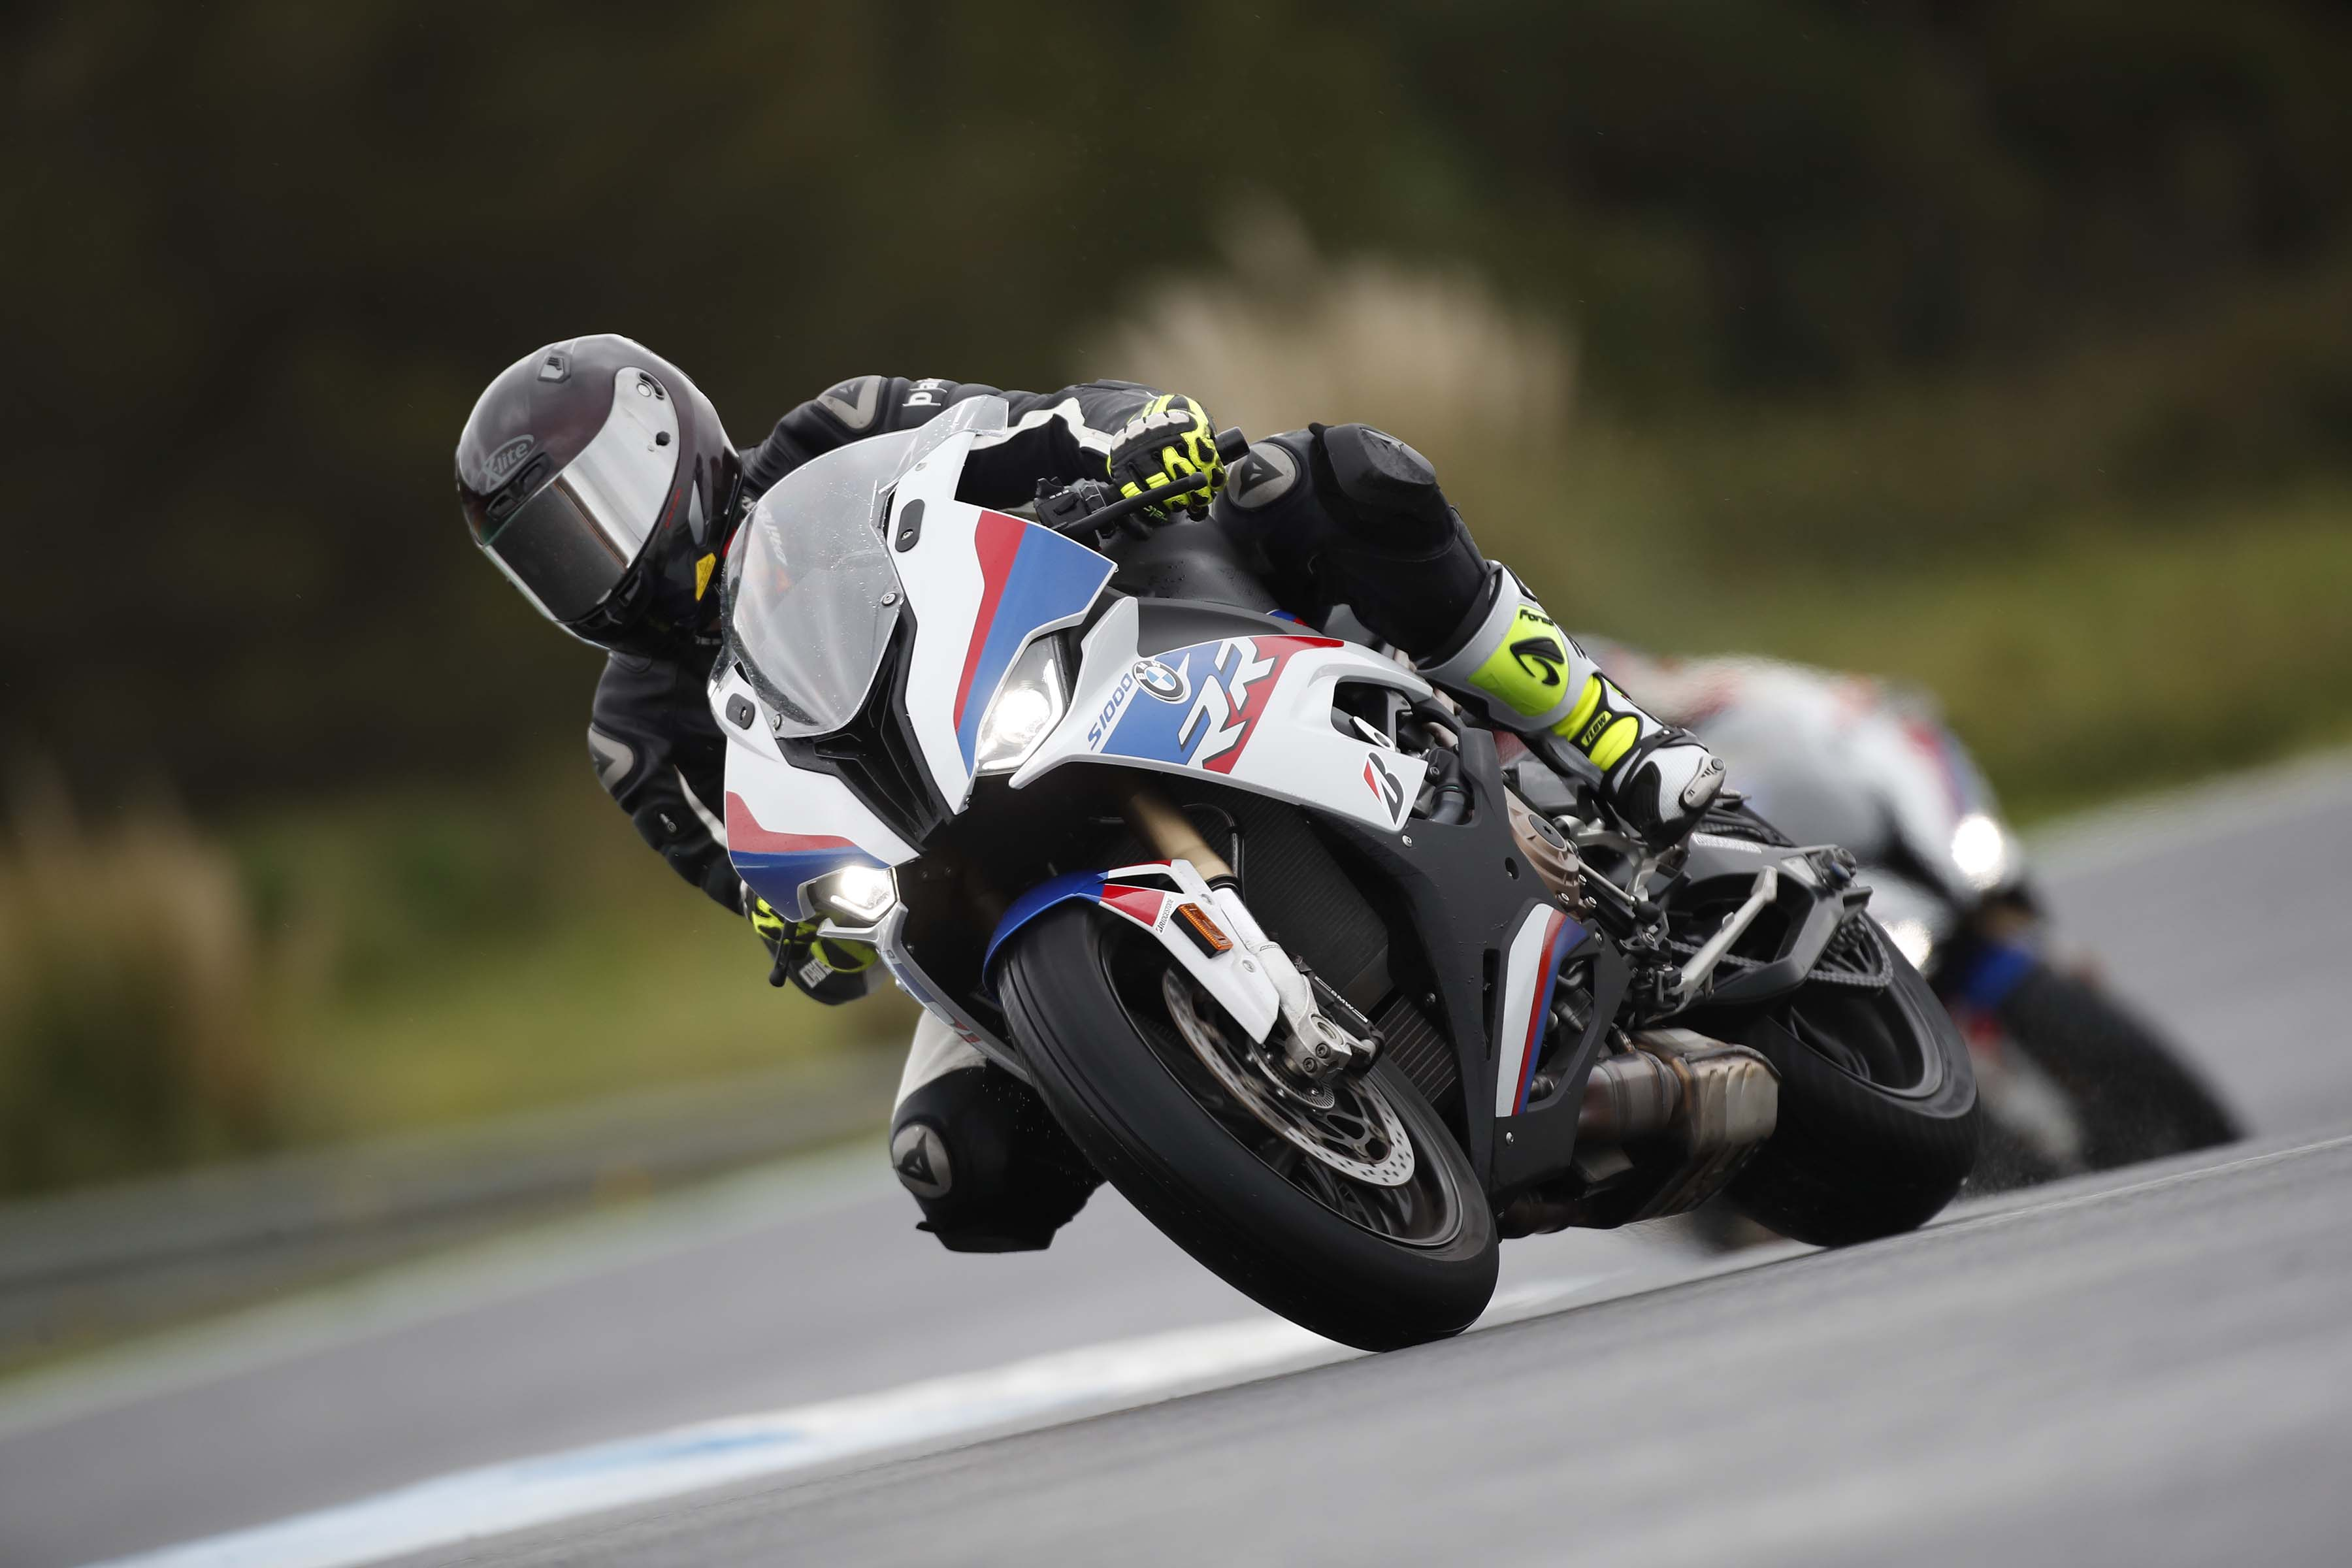 What It's Like To Ride The 2019 BMW S1000RR, A Wet Review